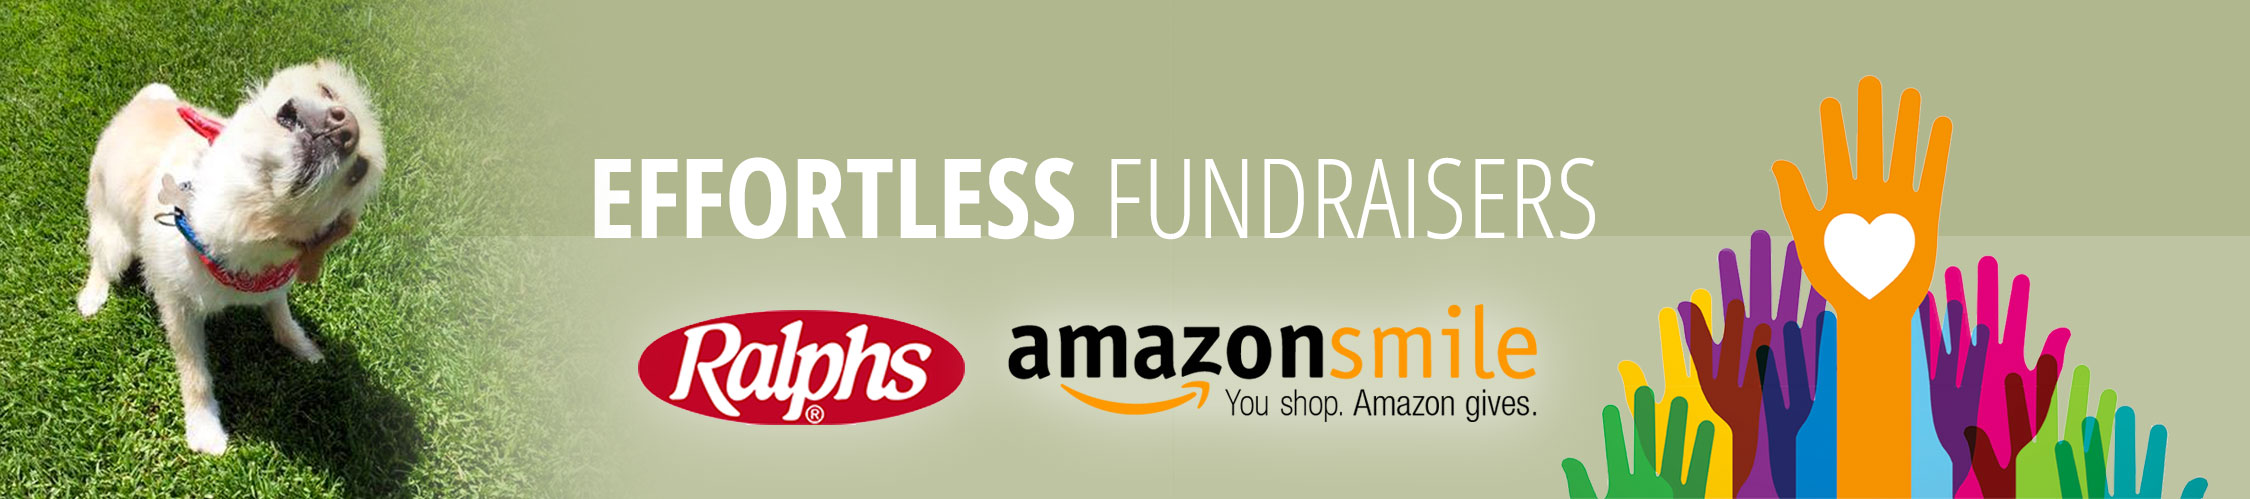 Effortless Fundraisers